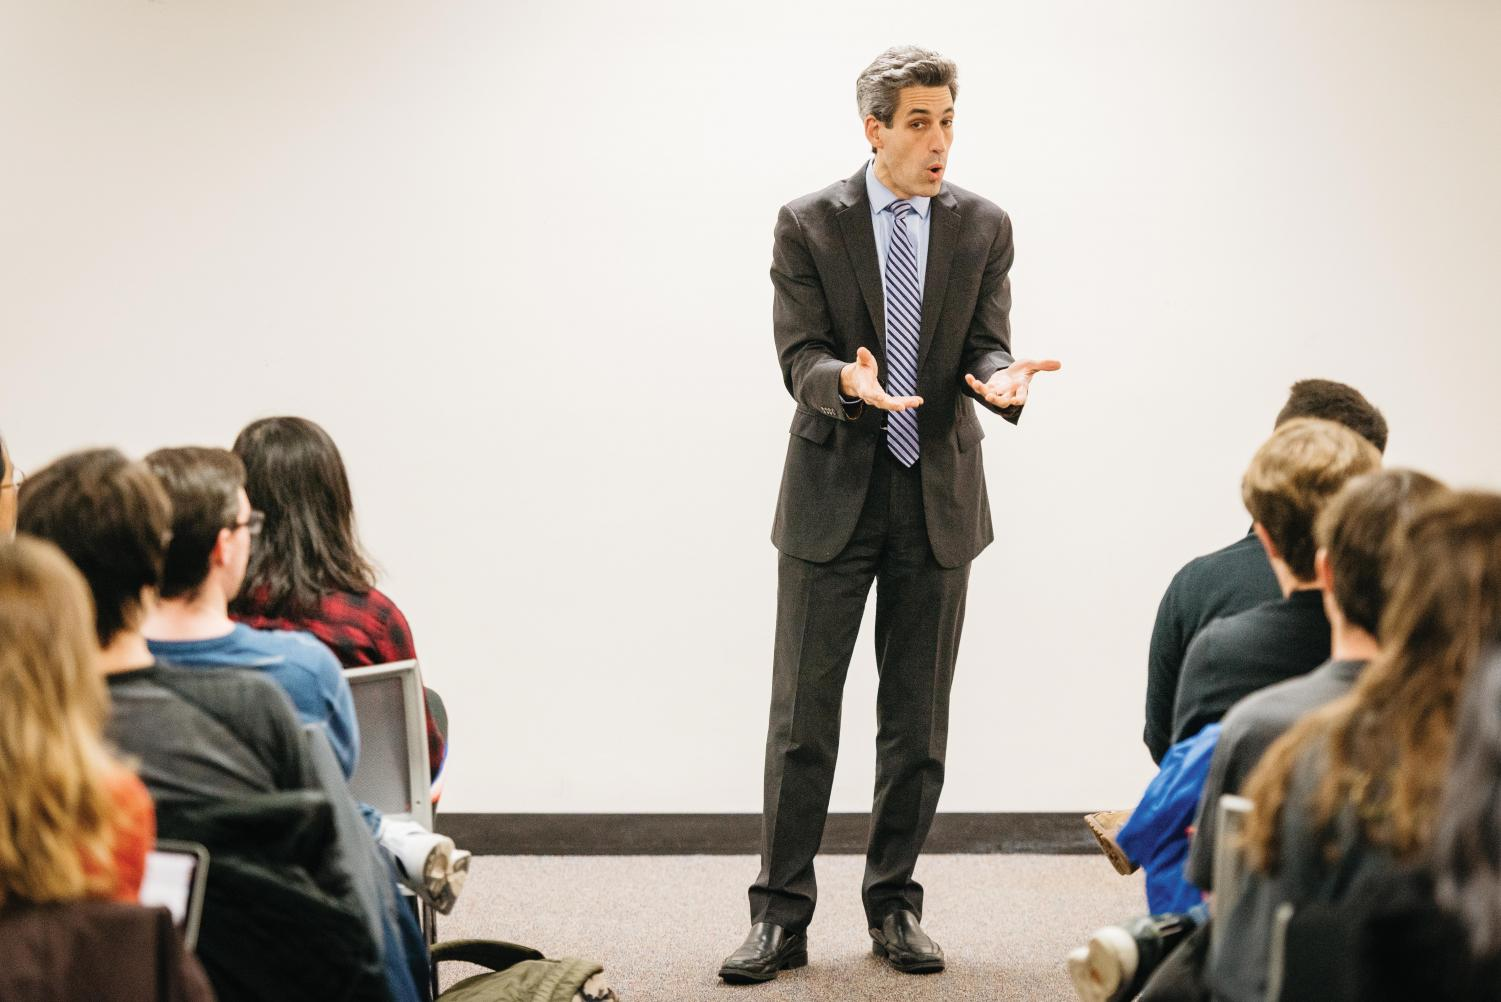 State Sen. Daniel Biss (D-Evanston) gestures at an event. The progressive organization Our Revolution Illinois endorsed Biss for governor.